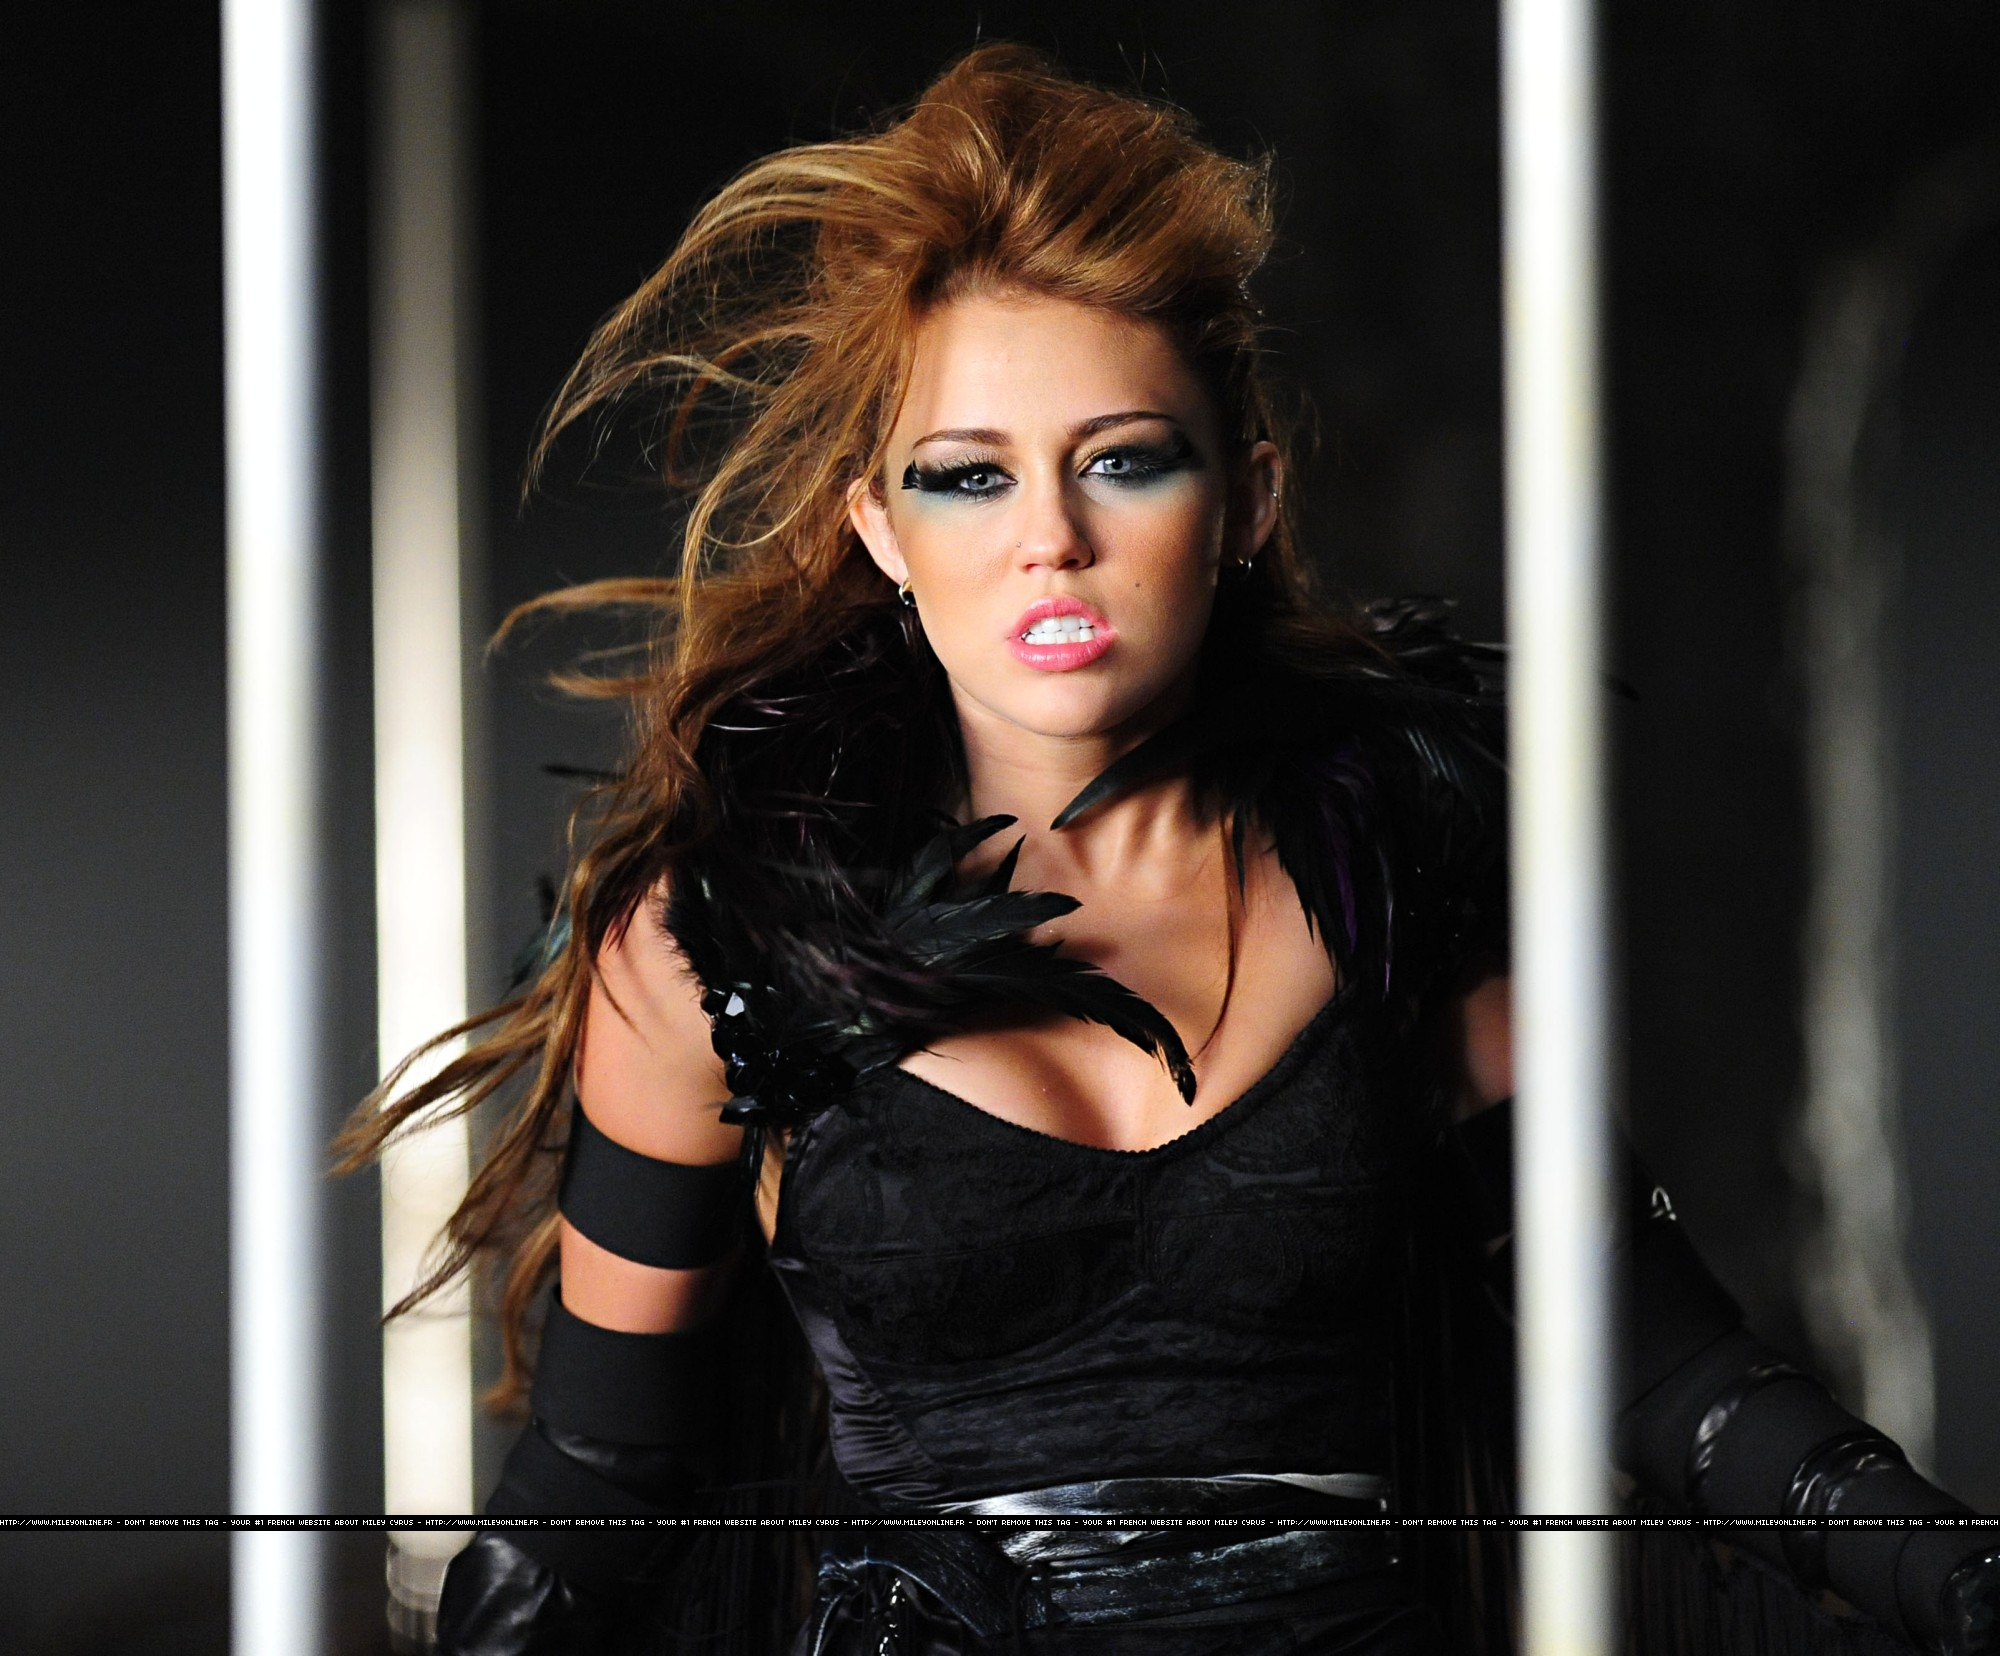 Miley Cyrus – Can't Be Tamed photoshoot HQ